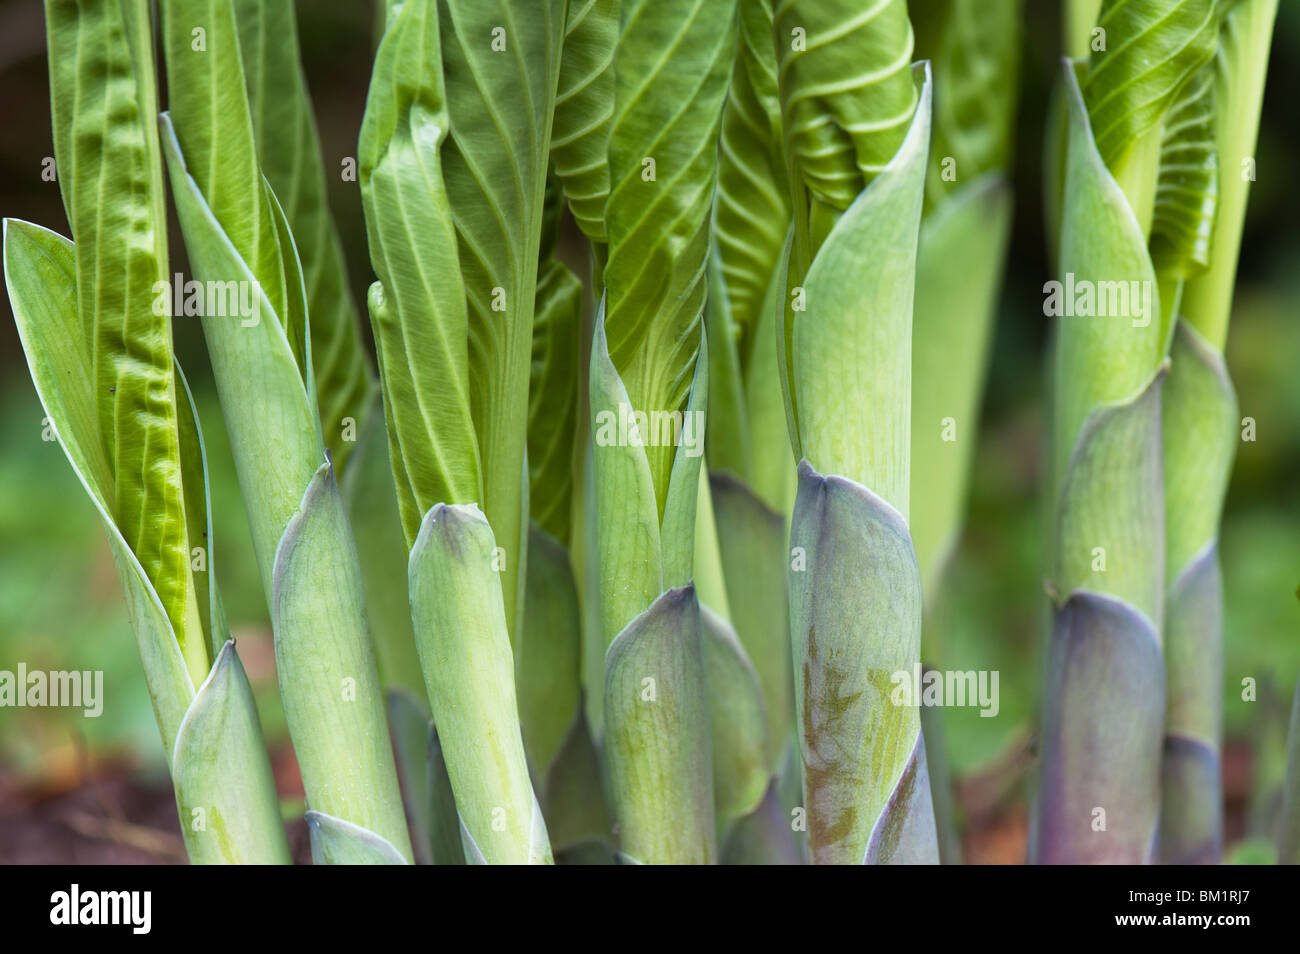 Hosta 'Snowdon' plant leaf shoots emerging in spring. UK - Stock Image